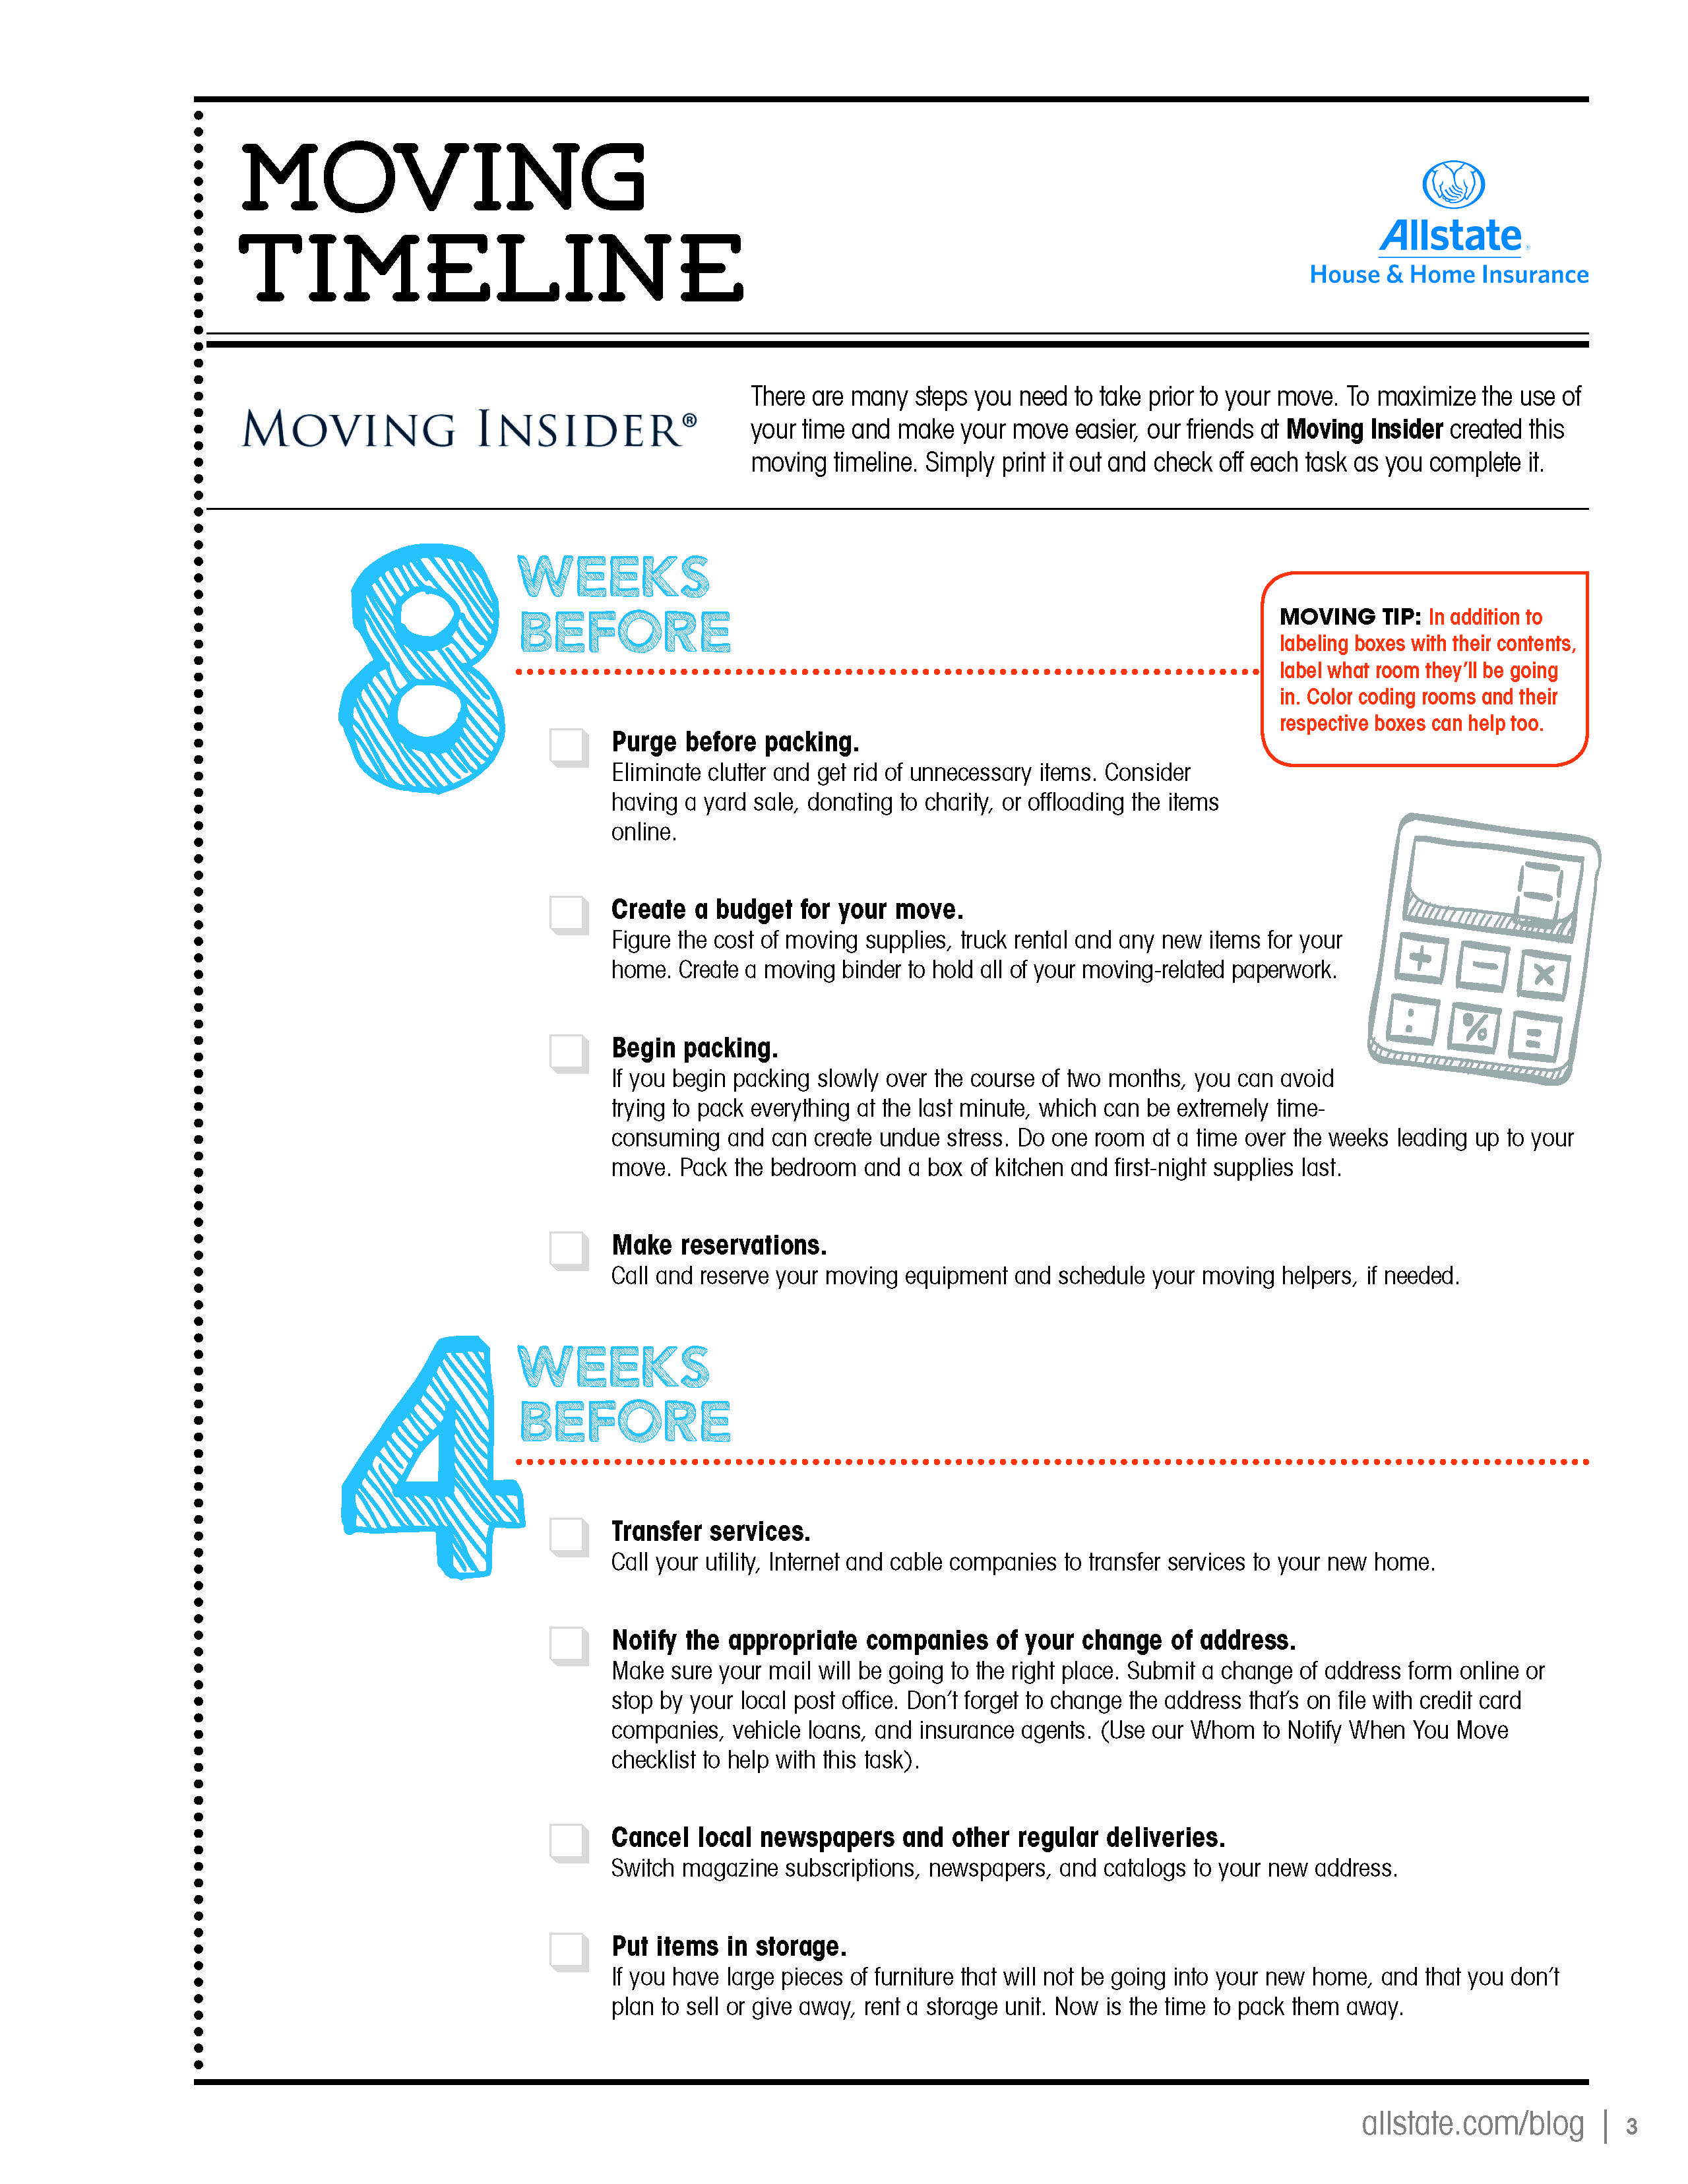 Moving Timeline Page 1 Of 3 Loveyourhome Moving Timeline